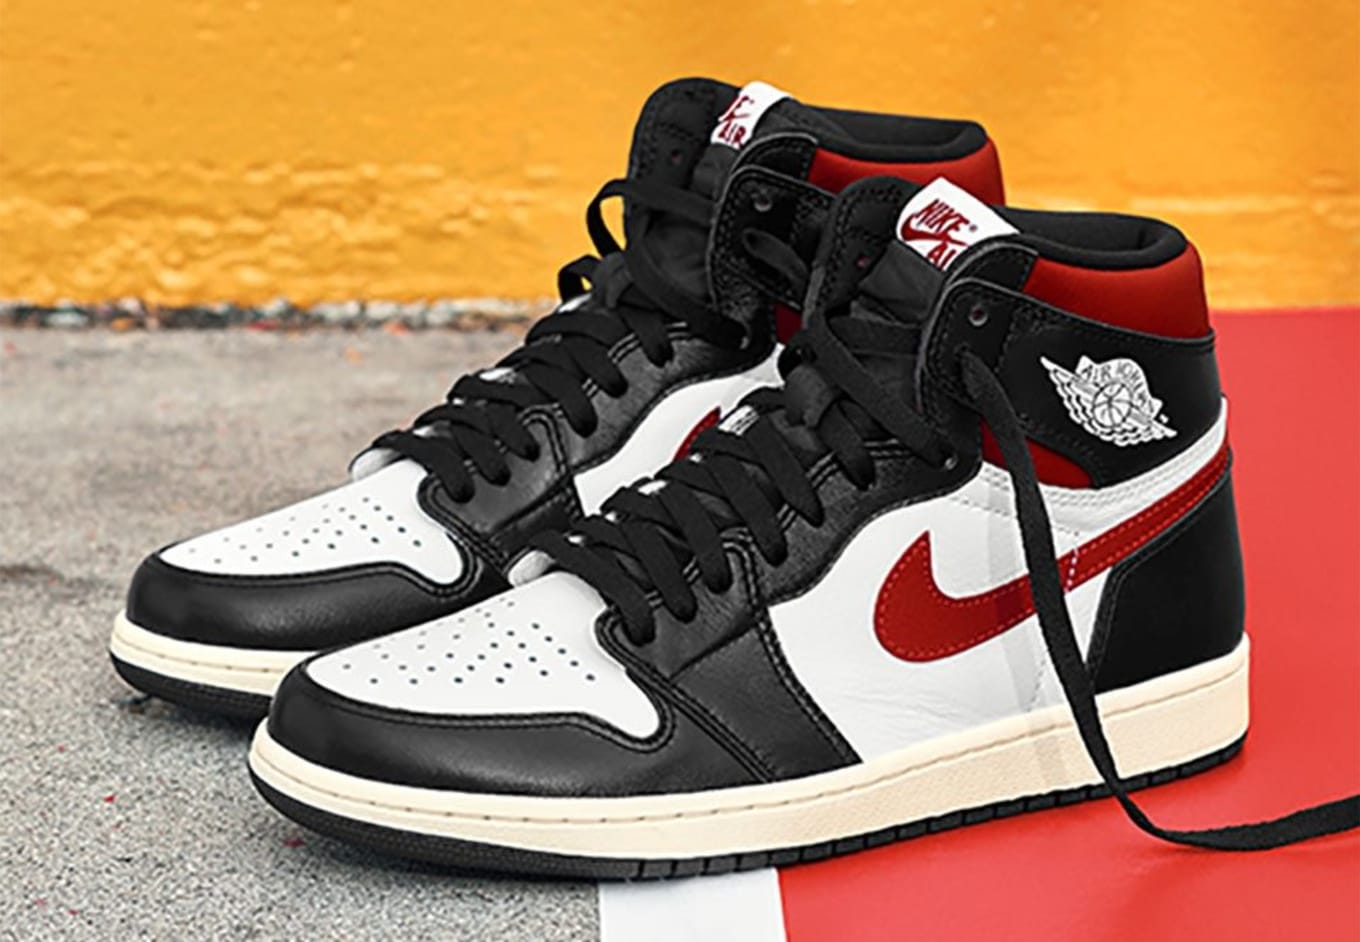 low cost 1cc74 43552 Air Jordan 1 Retro High OG Black/White-Sail-Gym Red. Image via Nike